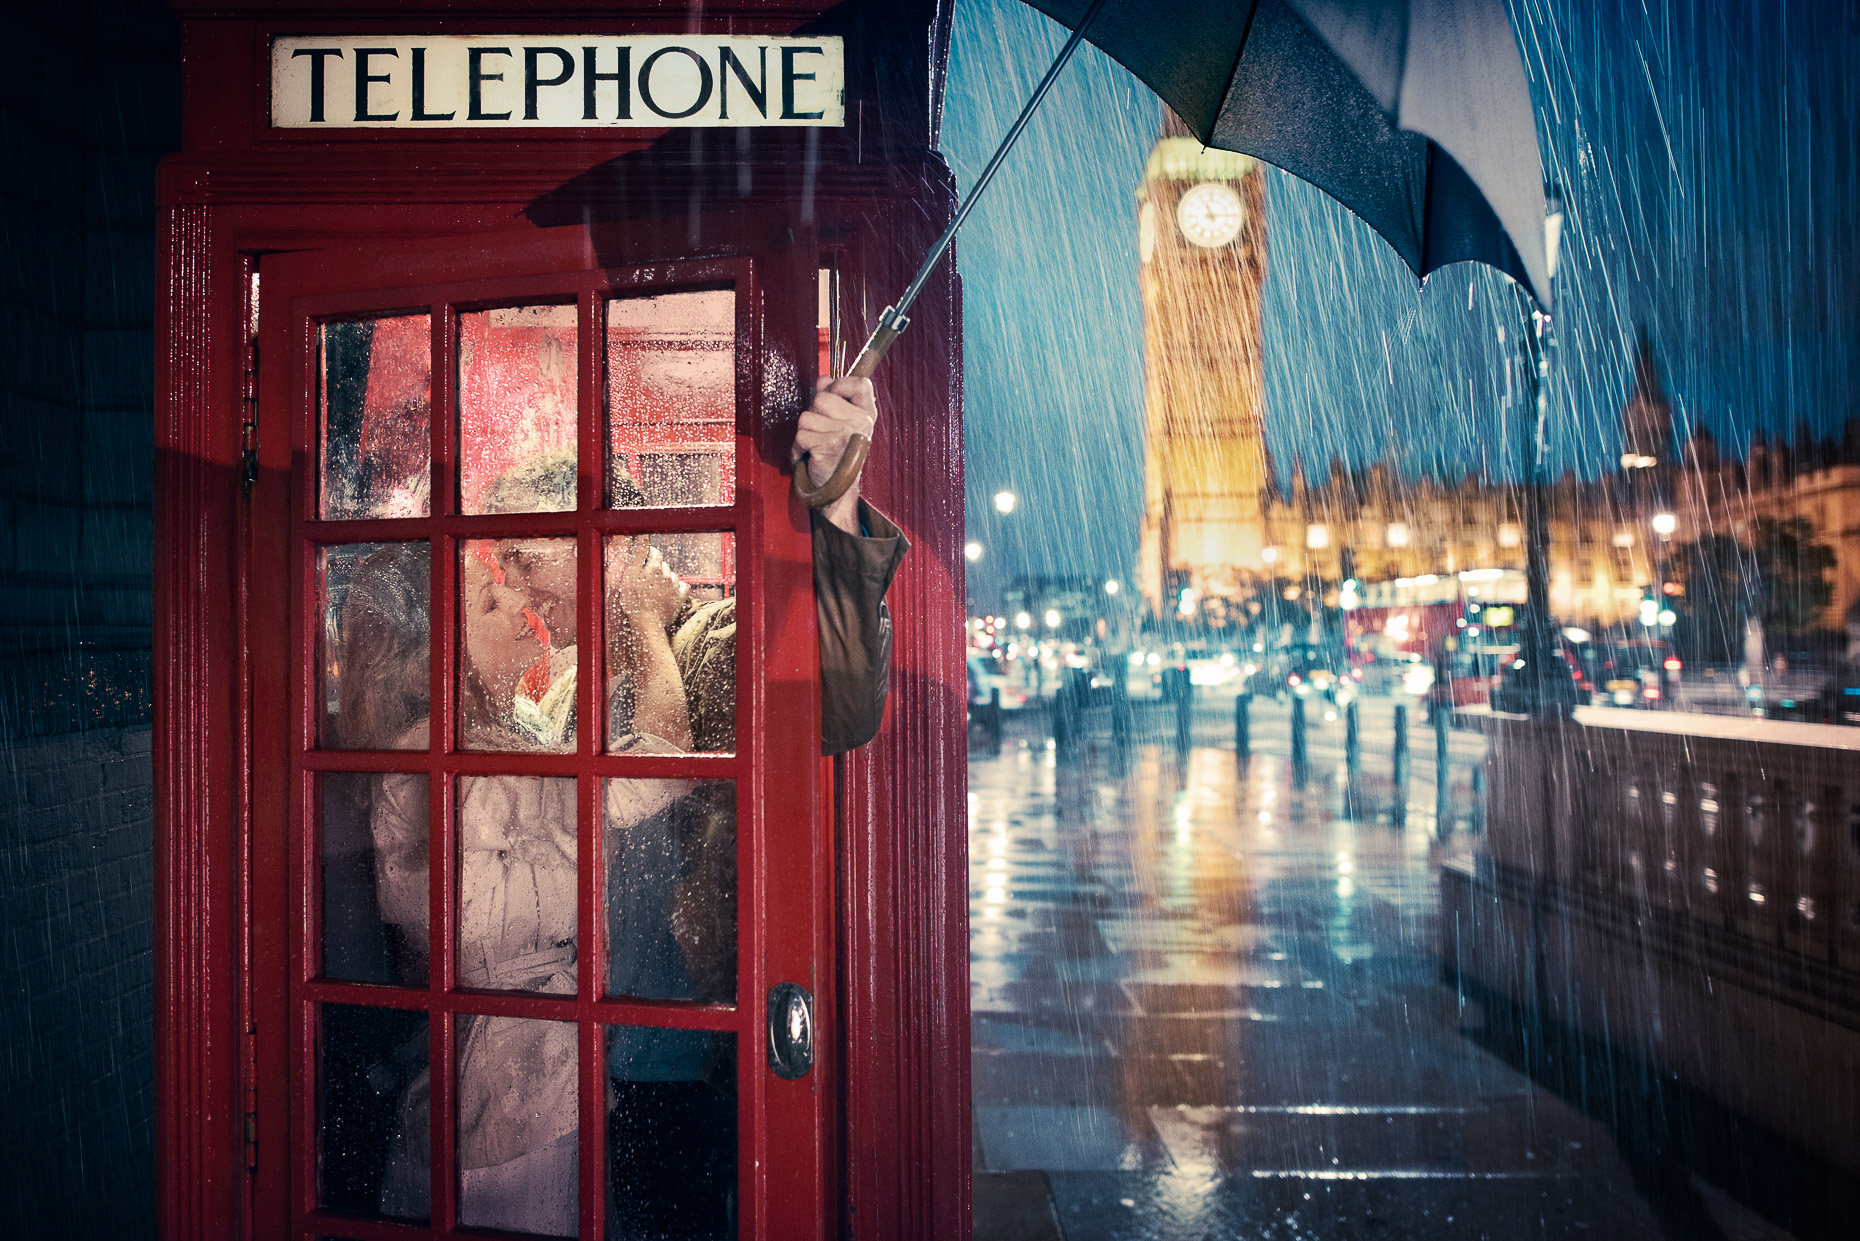 HHonors_6185_London_Rain_02g_R2_RGB-2-58